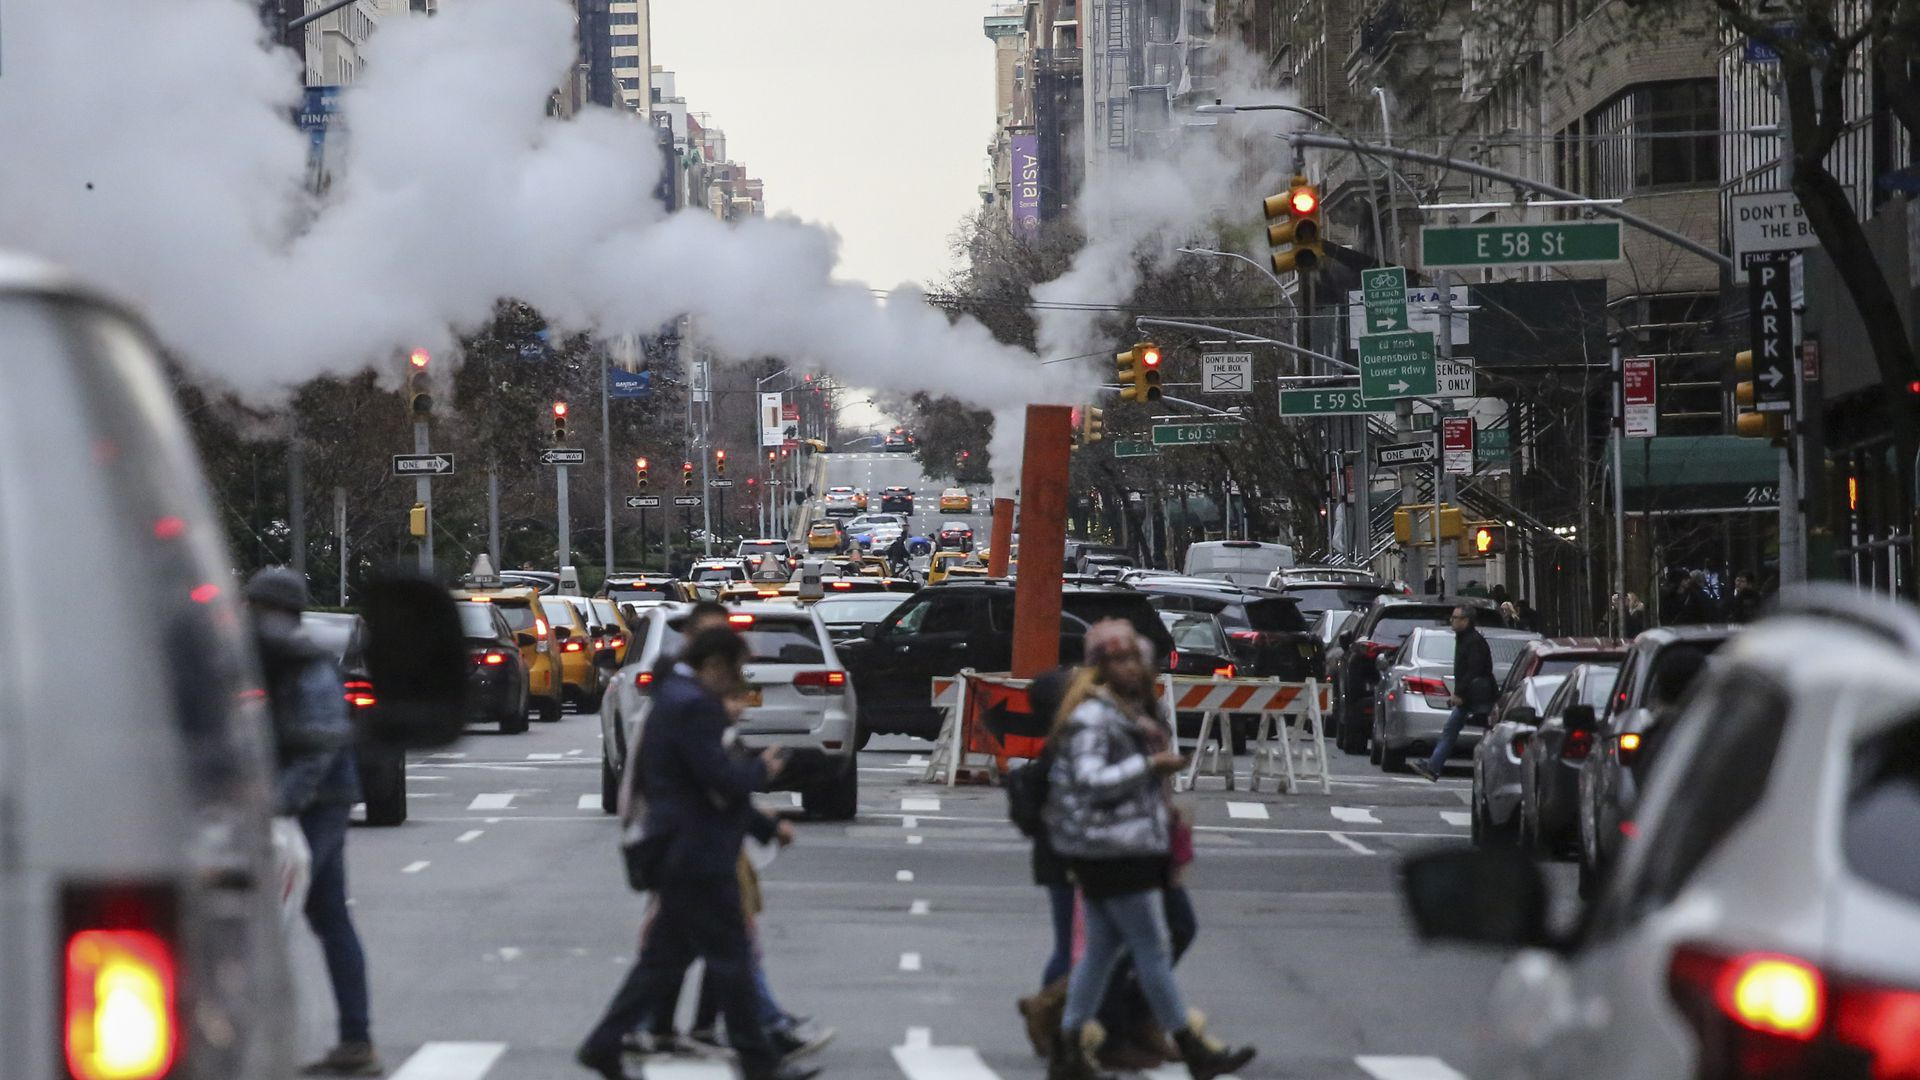 Pedestrians in NYC cross a the street while a pipe emits carbon dioxide emissions